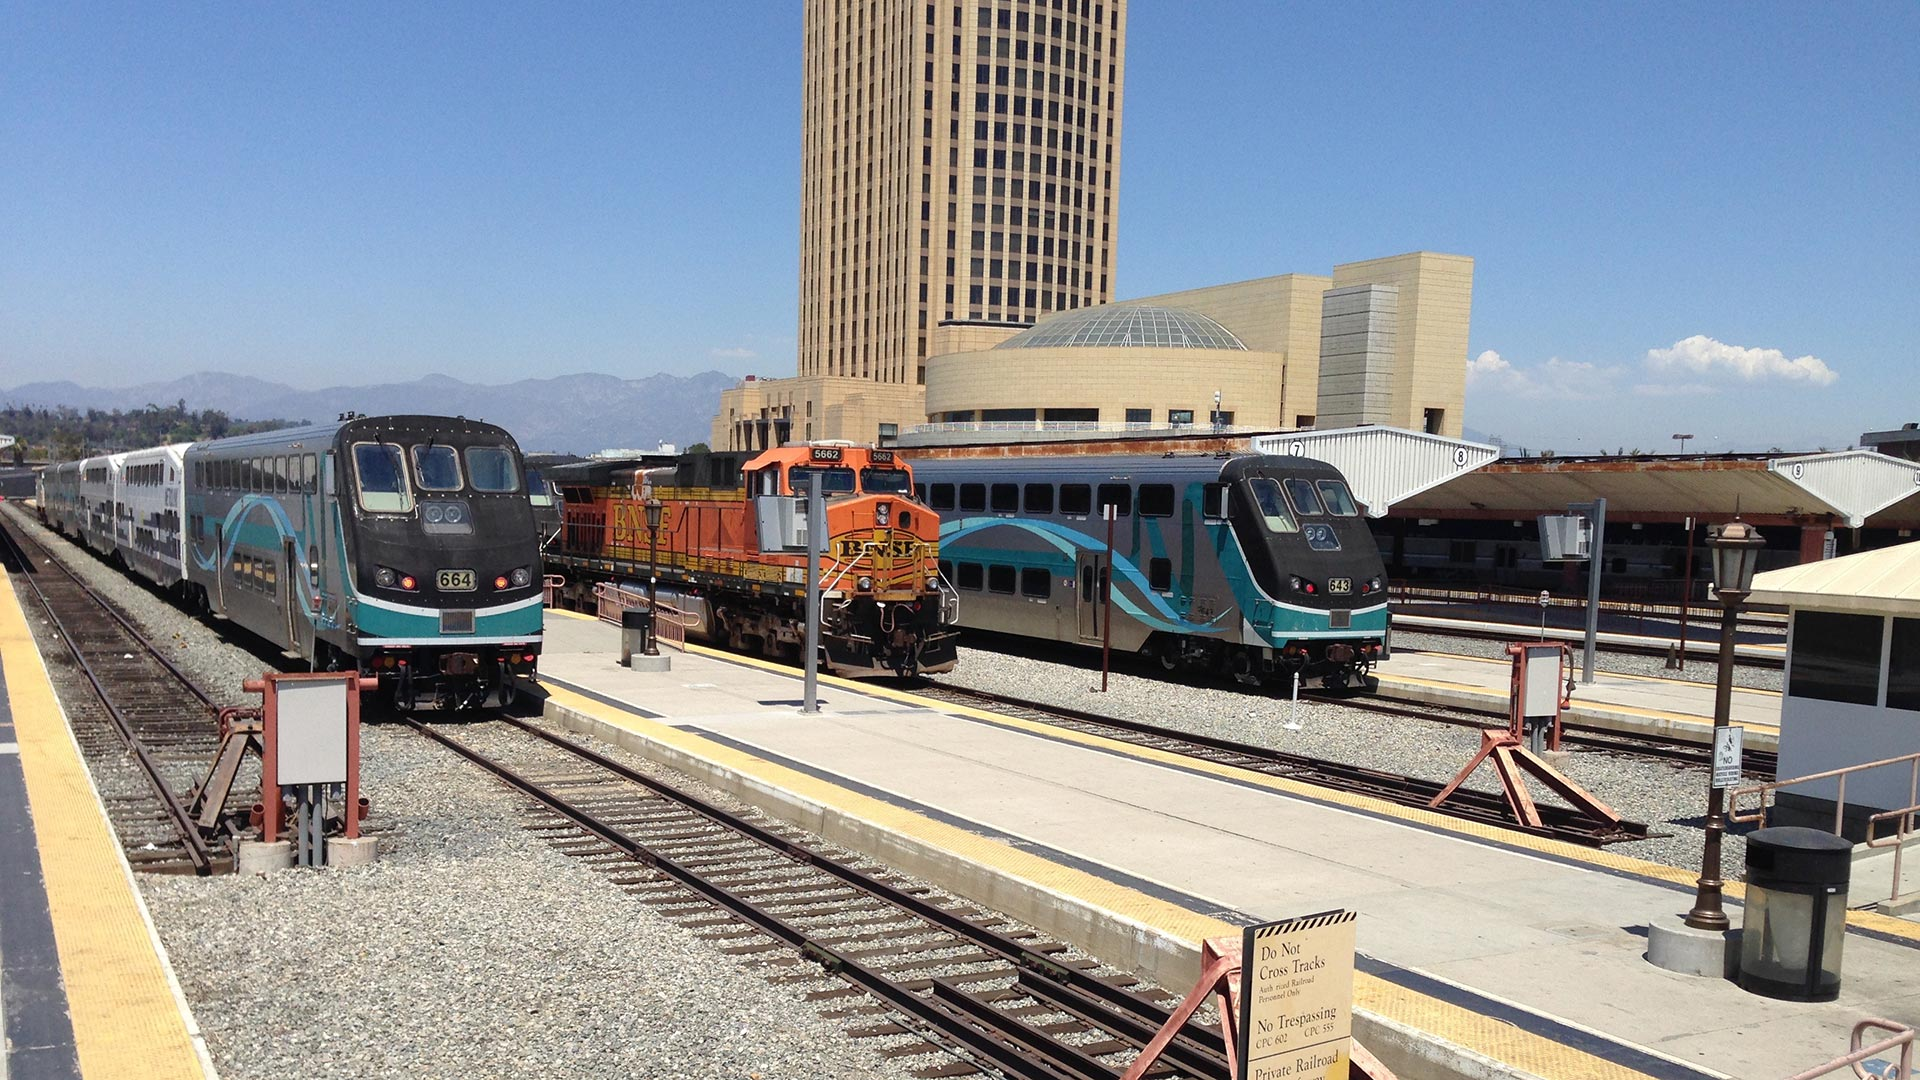 Metrolink trains, CA